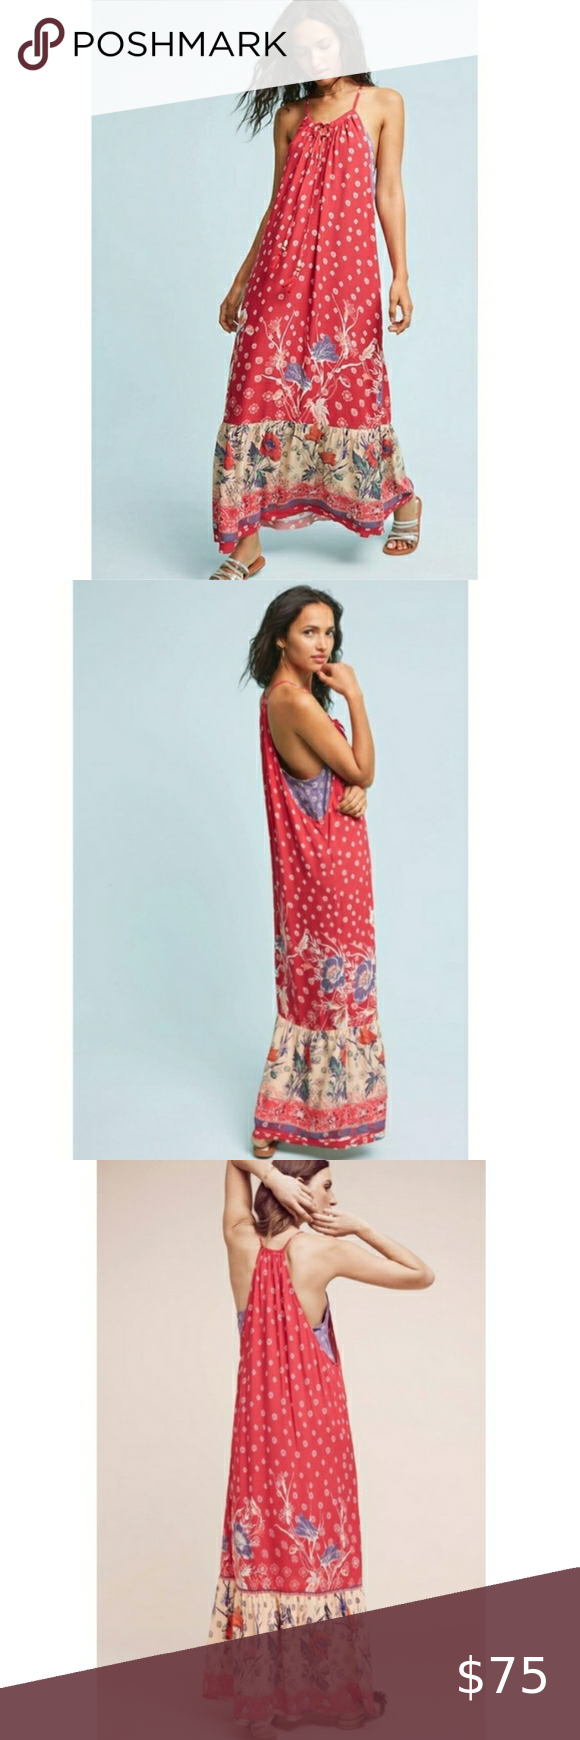 Anthropologie Maeve Red Floral Maxi Dress Red Floral Maxi Dress Purple Floral Maxi Dress Floral Maxi Dress [ 1740 x 580 Pixel ]